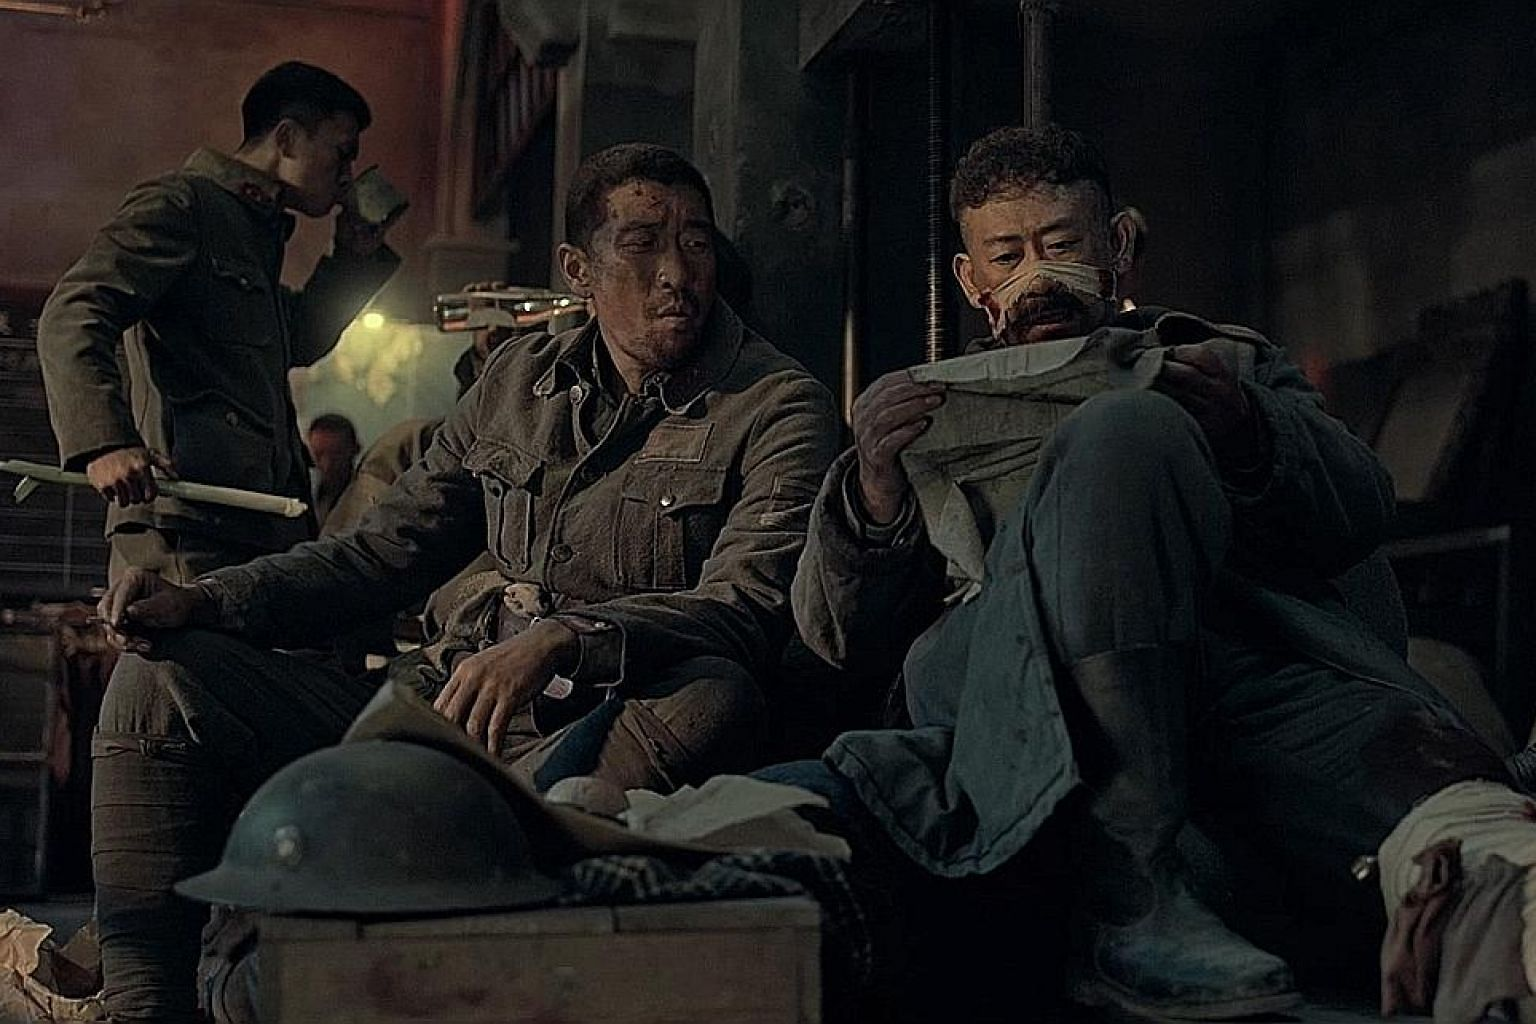 South Korean zombie flick #Alive stars Yoo Ah-in (left) as a gaming addict who finds himself alone in his apartment when the apocalypse strikes. In The Secret Garden, Dixie Egerickx (above) plays Mary, an orphan sent to live with an uncle in a creepy